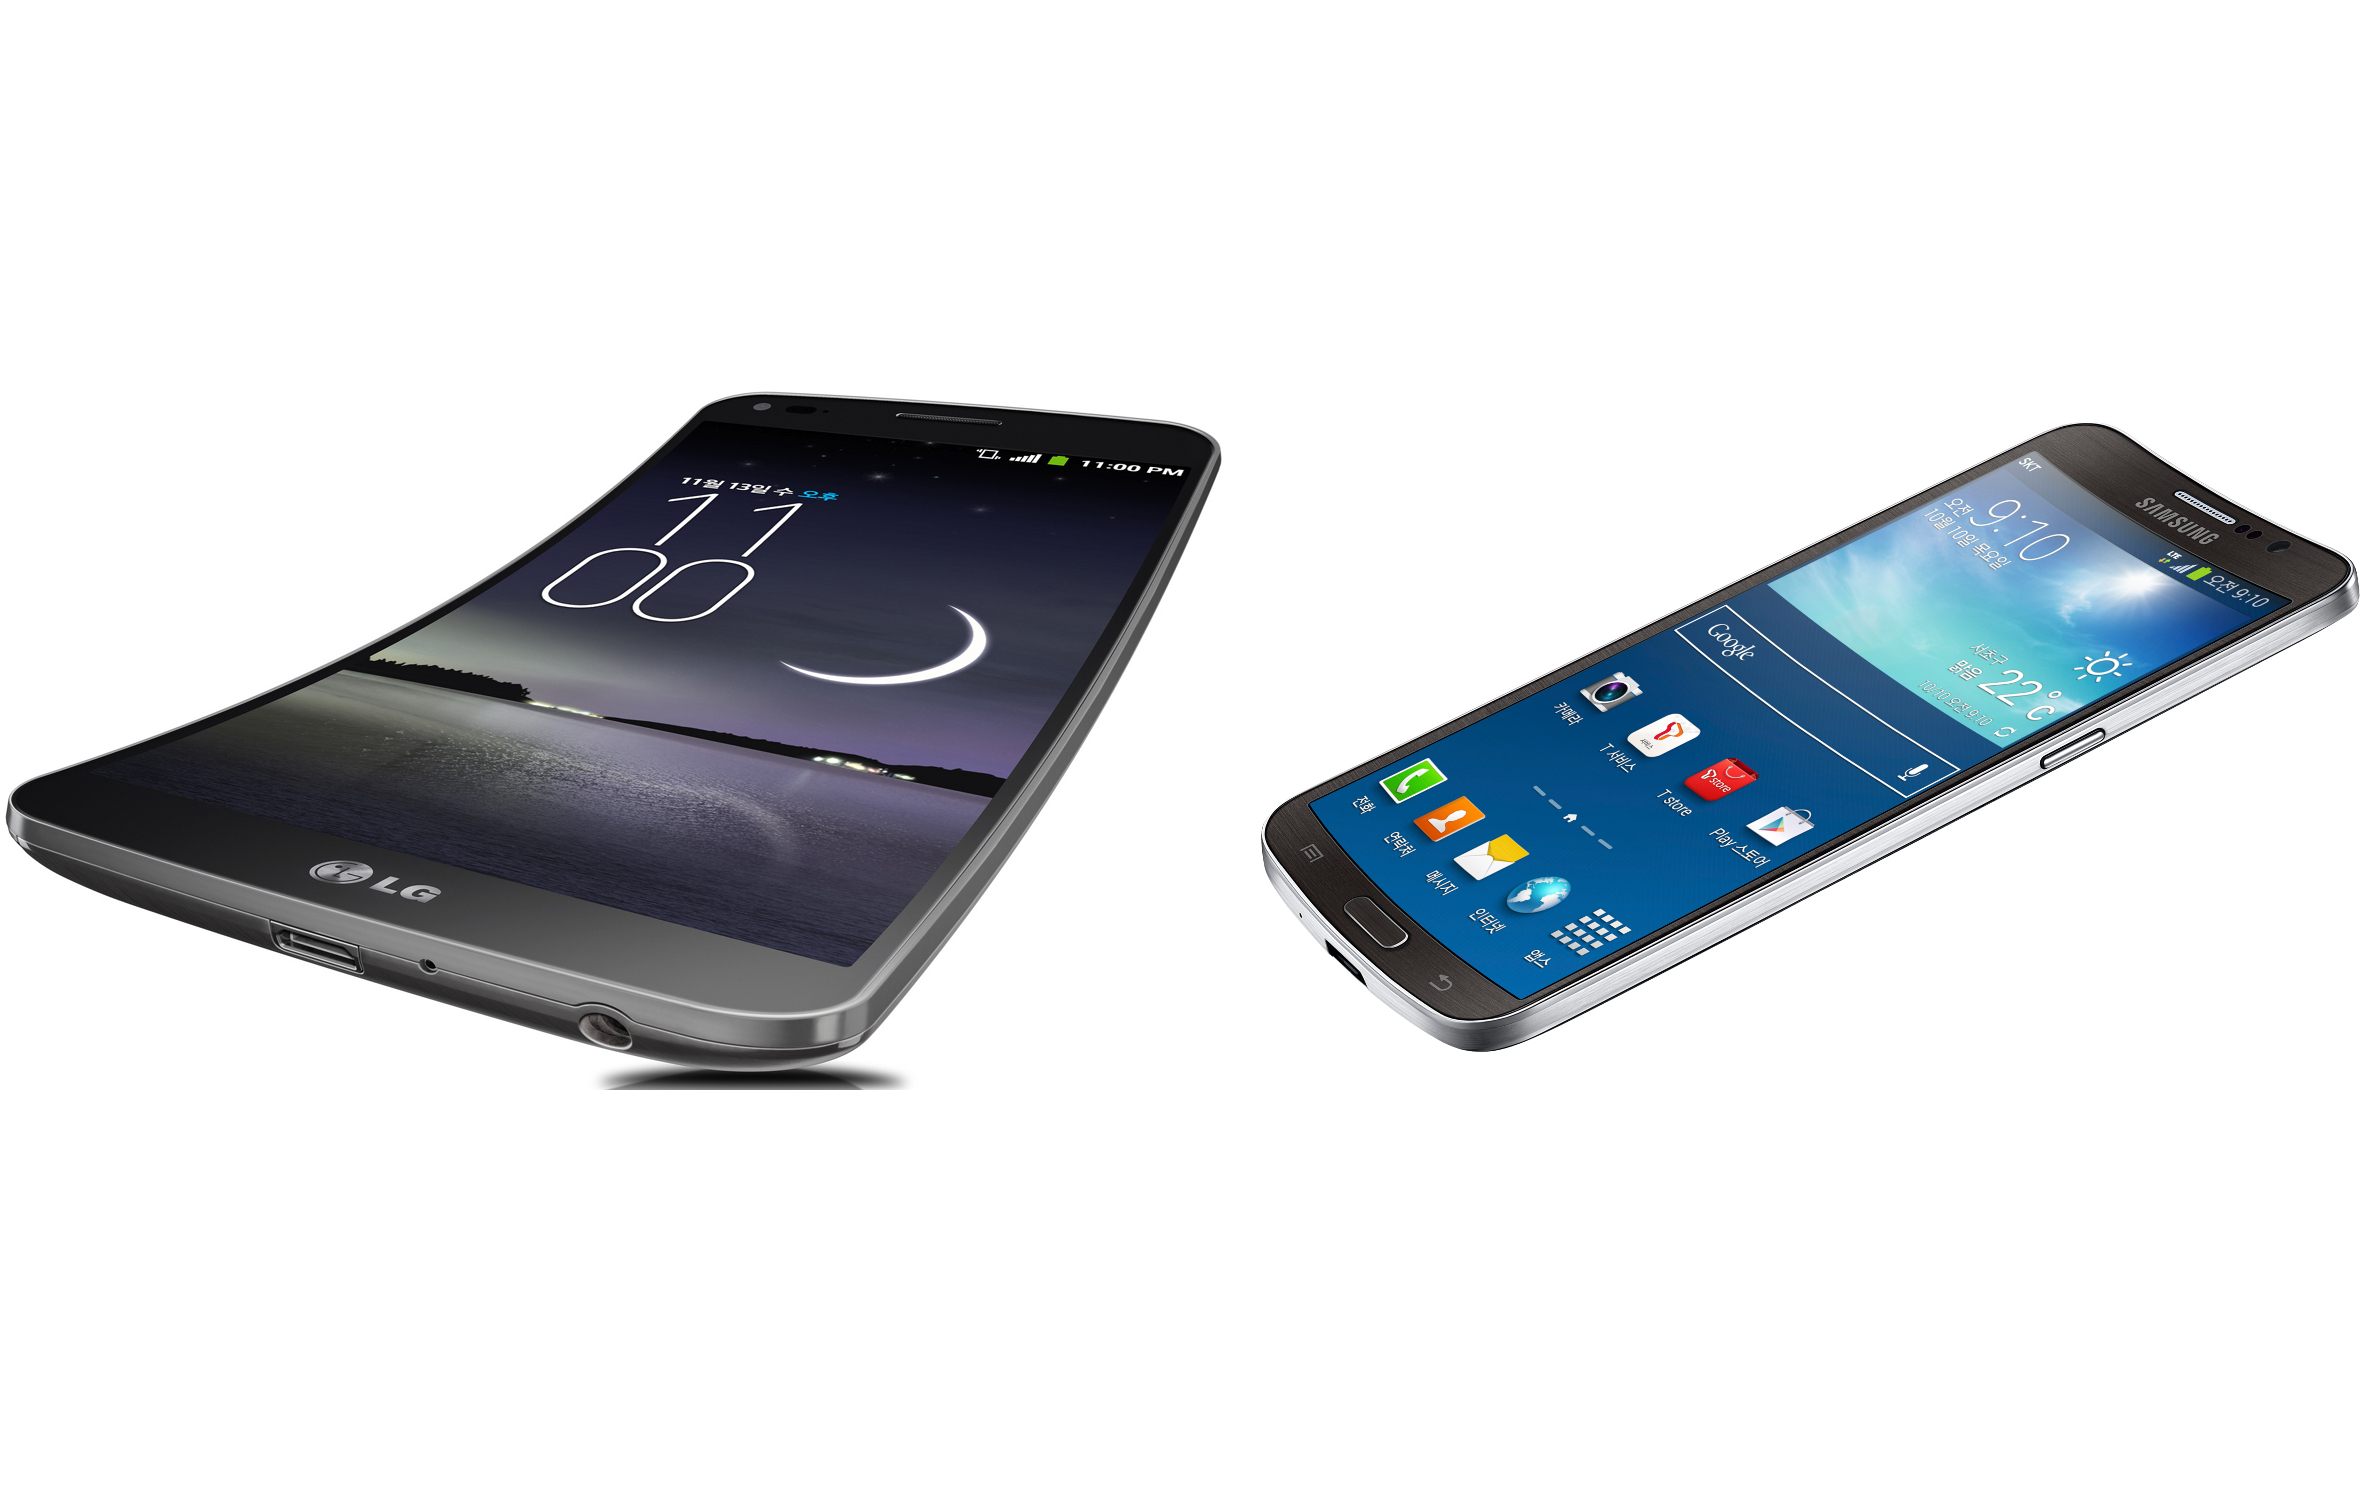 The LG Flex, on the left, is curved from top to bottom. The Galaxy Round, on the right, is curved from left to right.